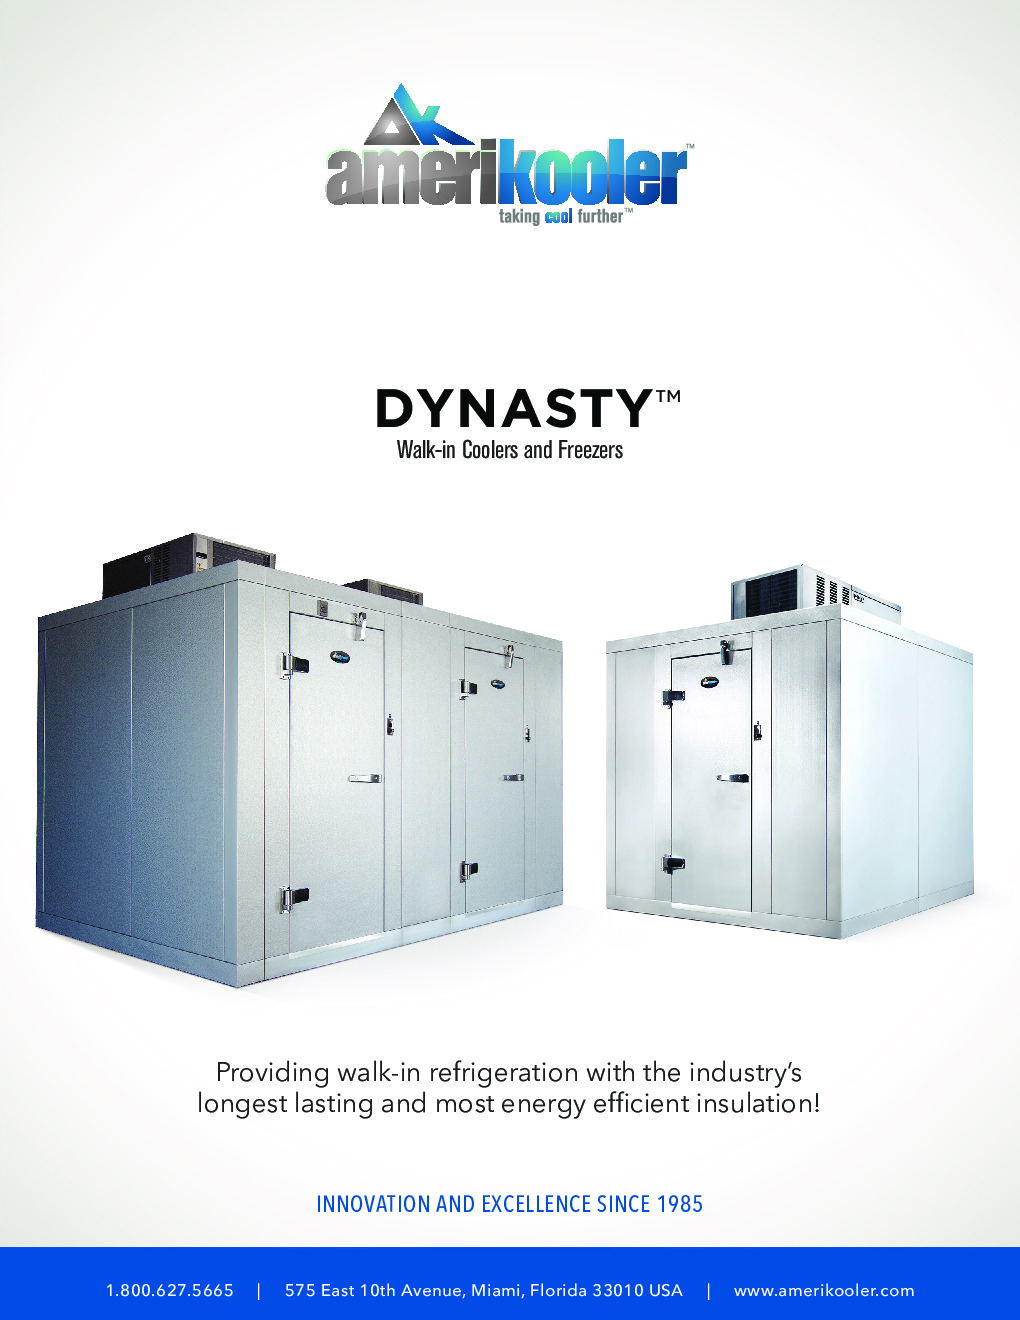 AmeriKooler DW061477N-6/8-RM 6' X 14' Walk-In Cooler, 8' L Cooler without Floor and 6' L Freezer, Remote